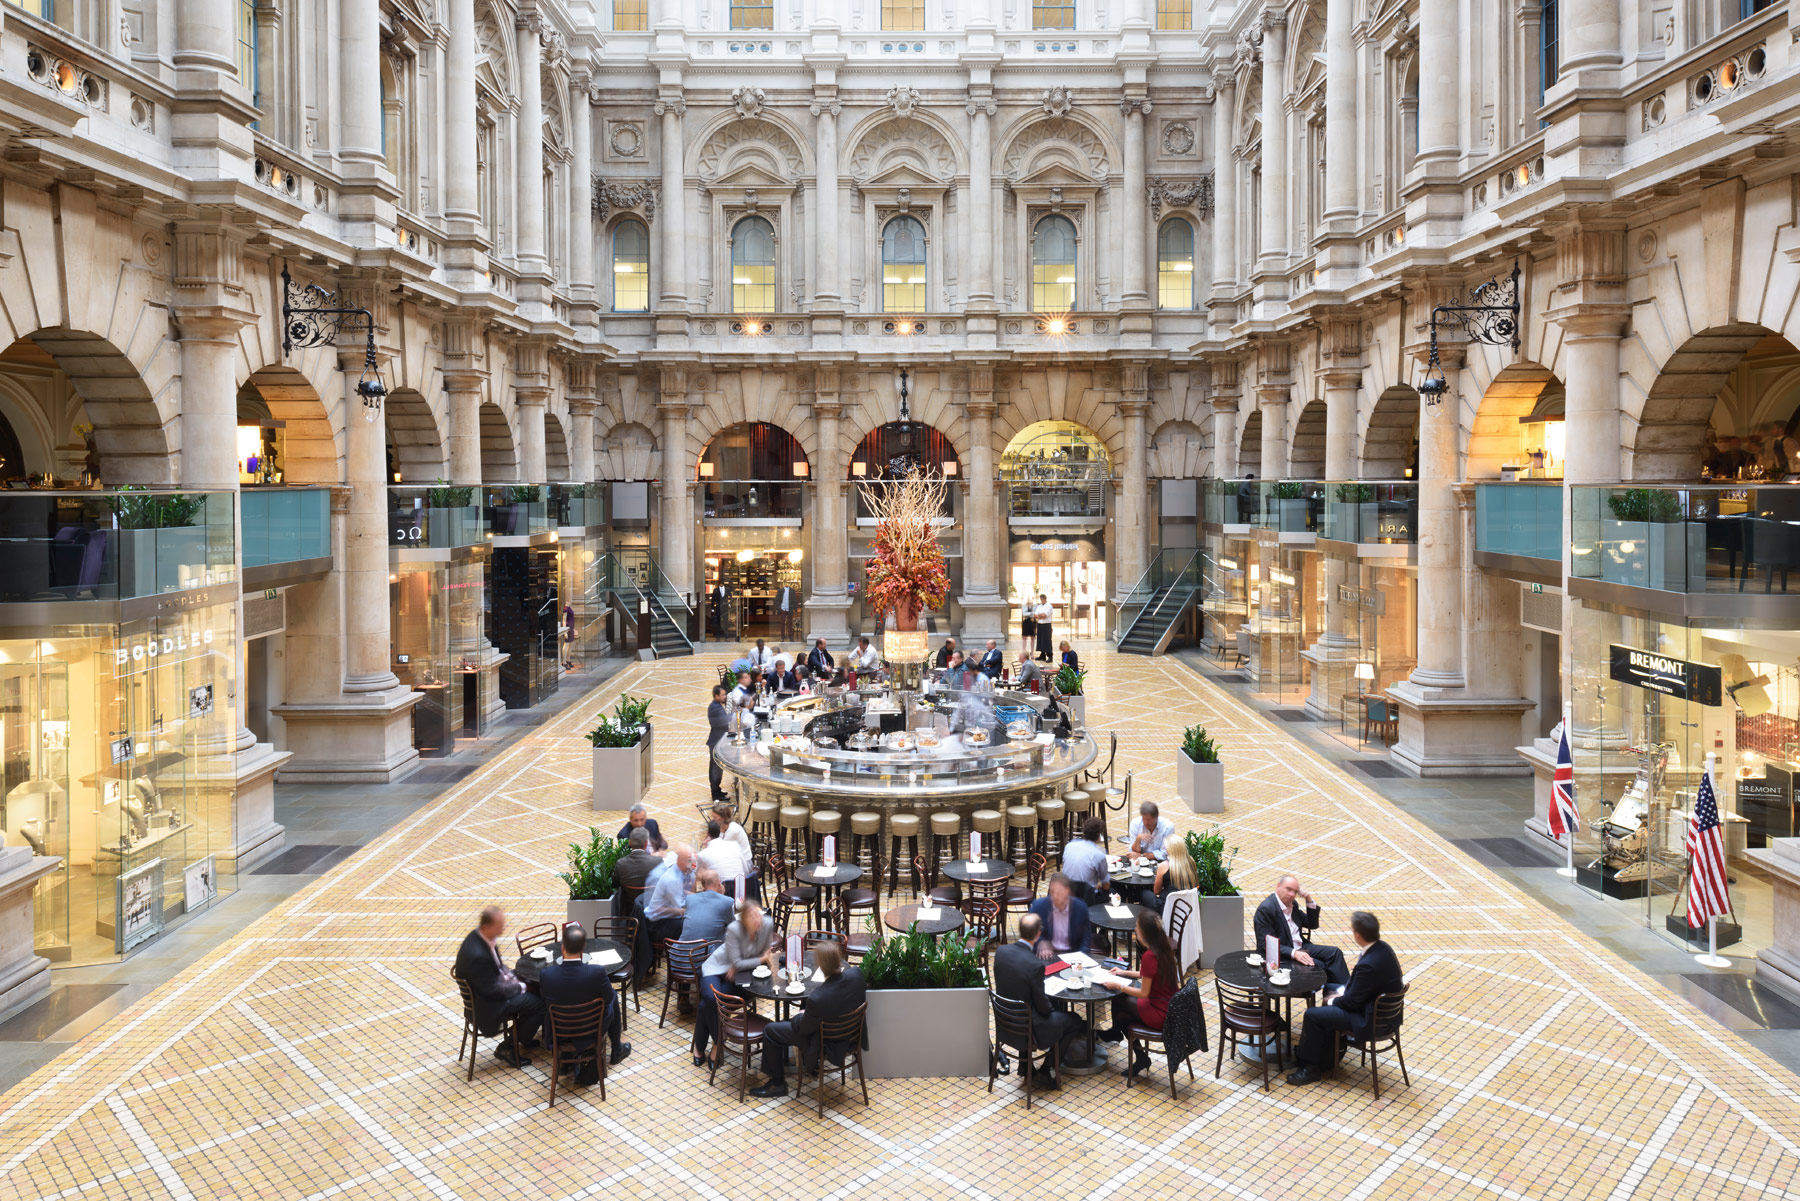 The Royal Exchange is the famous home of luxury shopping for the City of London